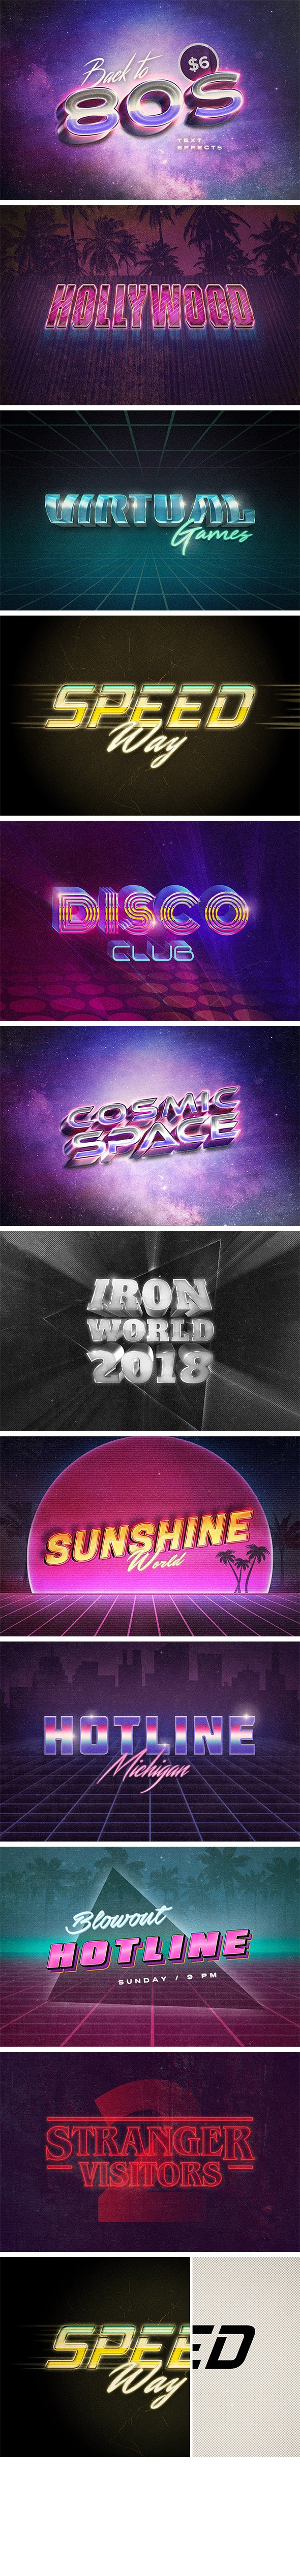 Back to the 80s Retro Text Effects - Text Effects Actions